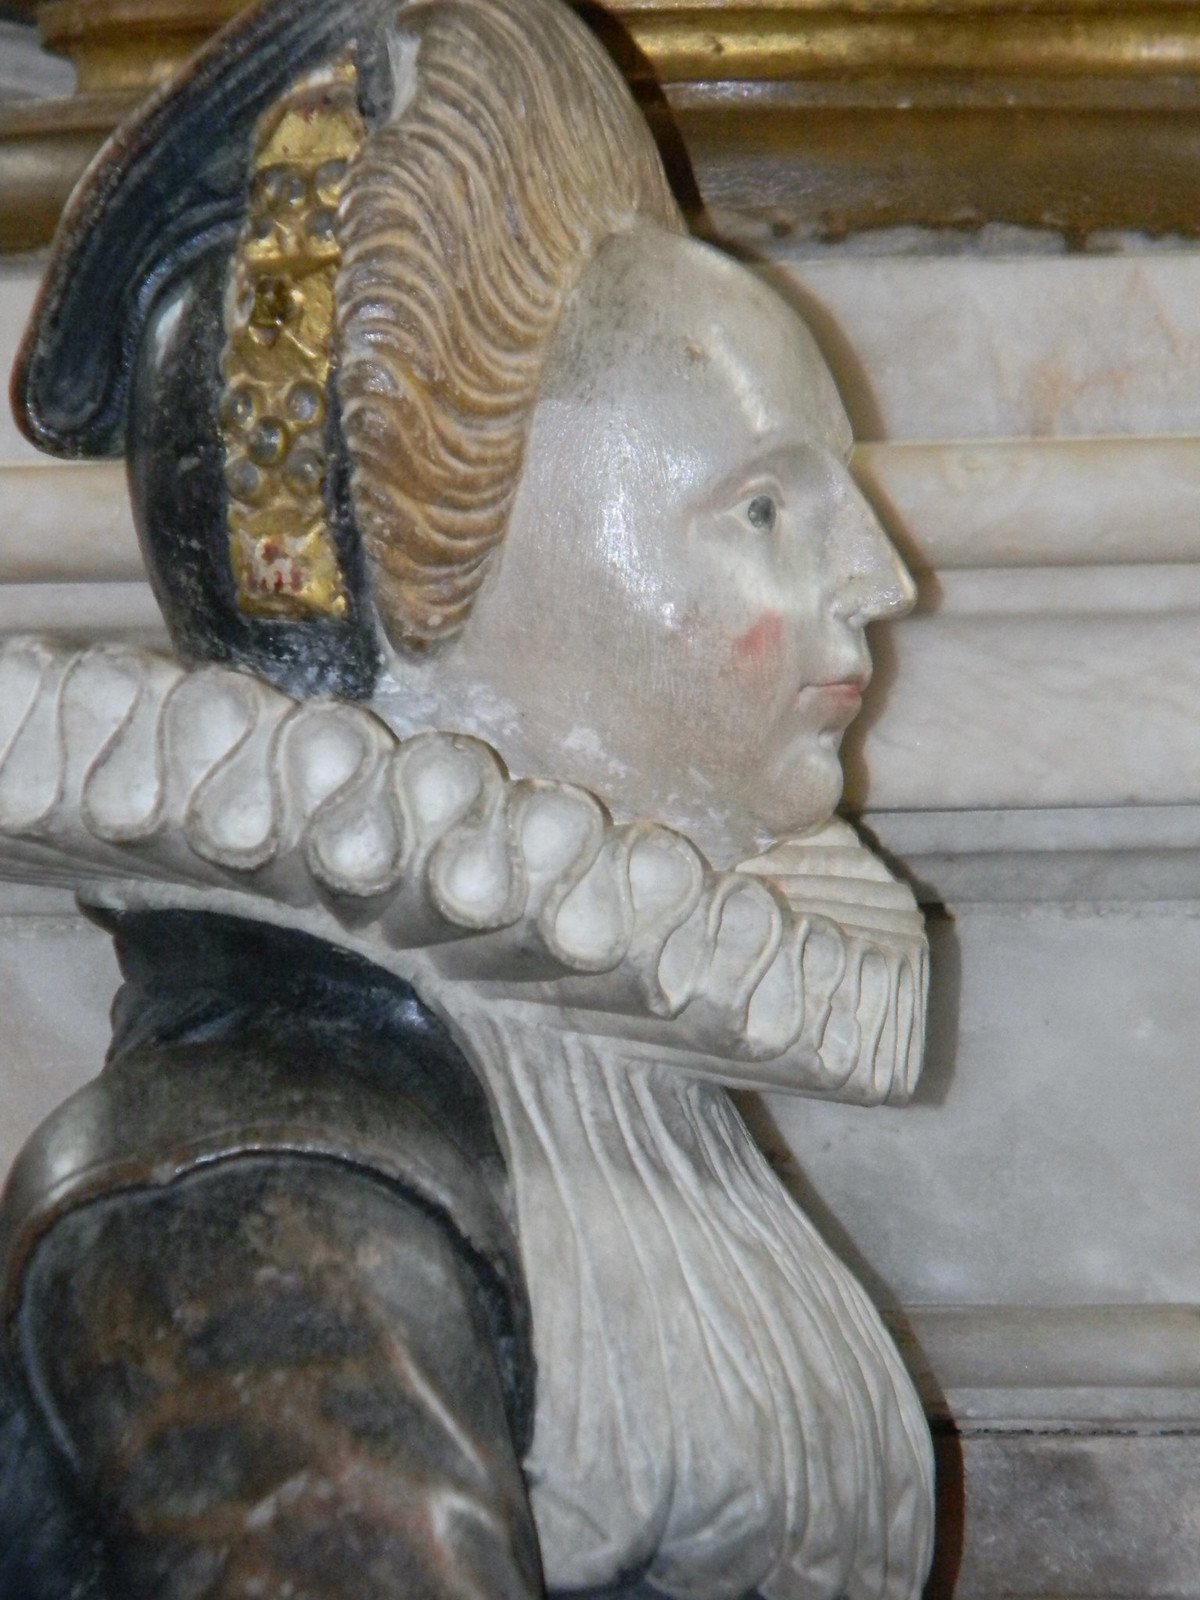 A Knollys daughter The Knollys tomb, Rotherfield Greys. Shiplake to Henley